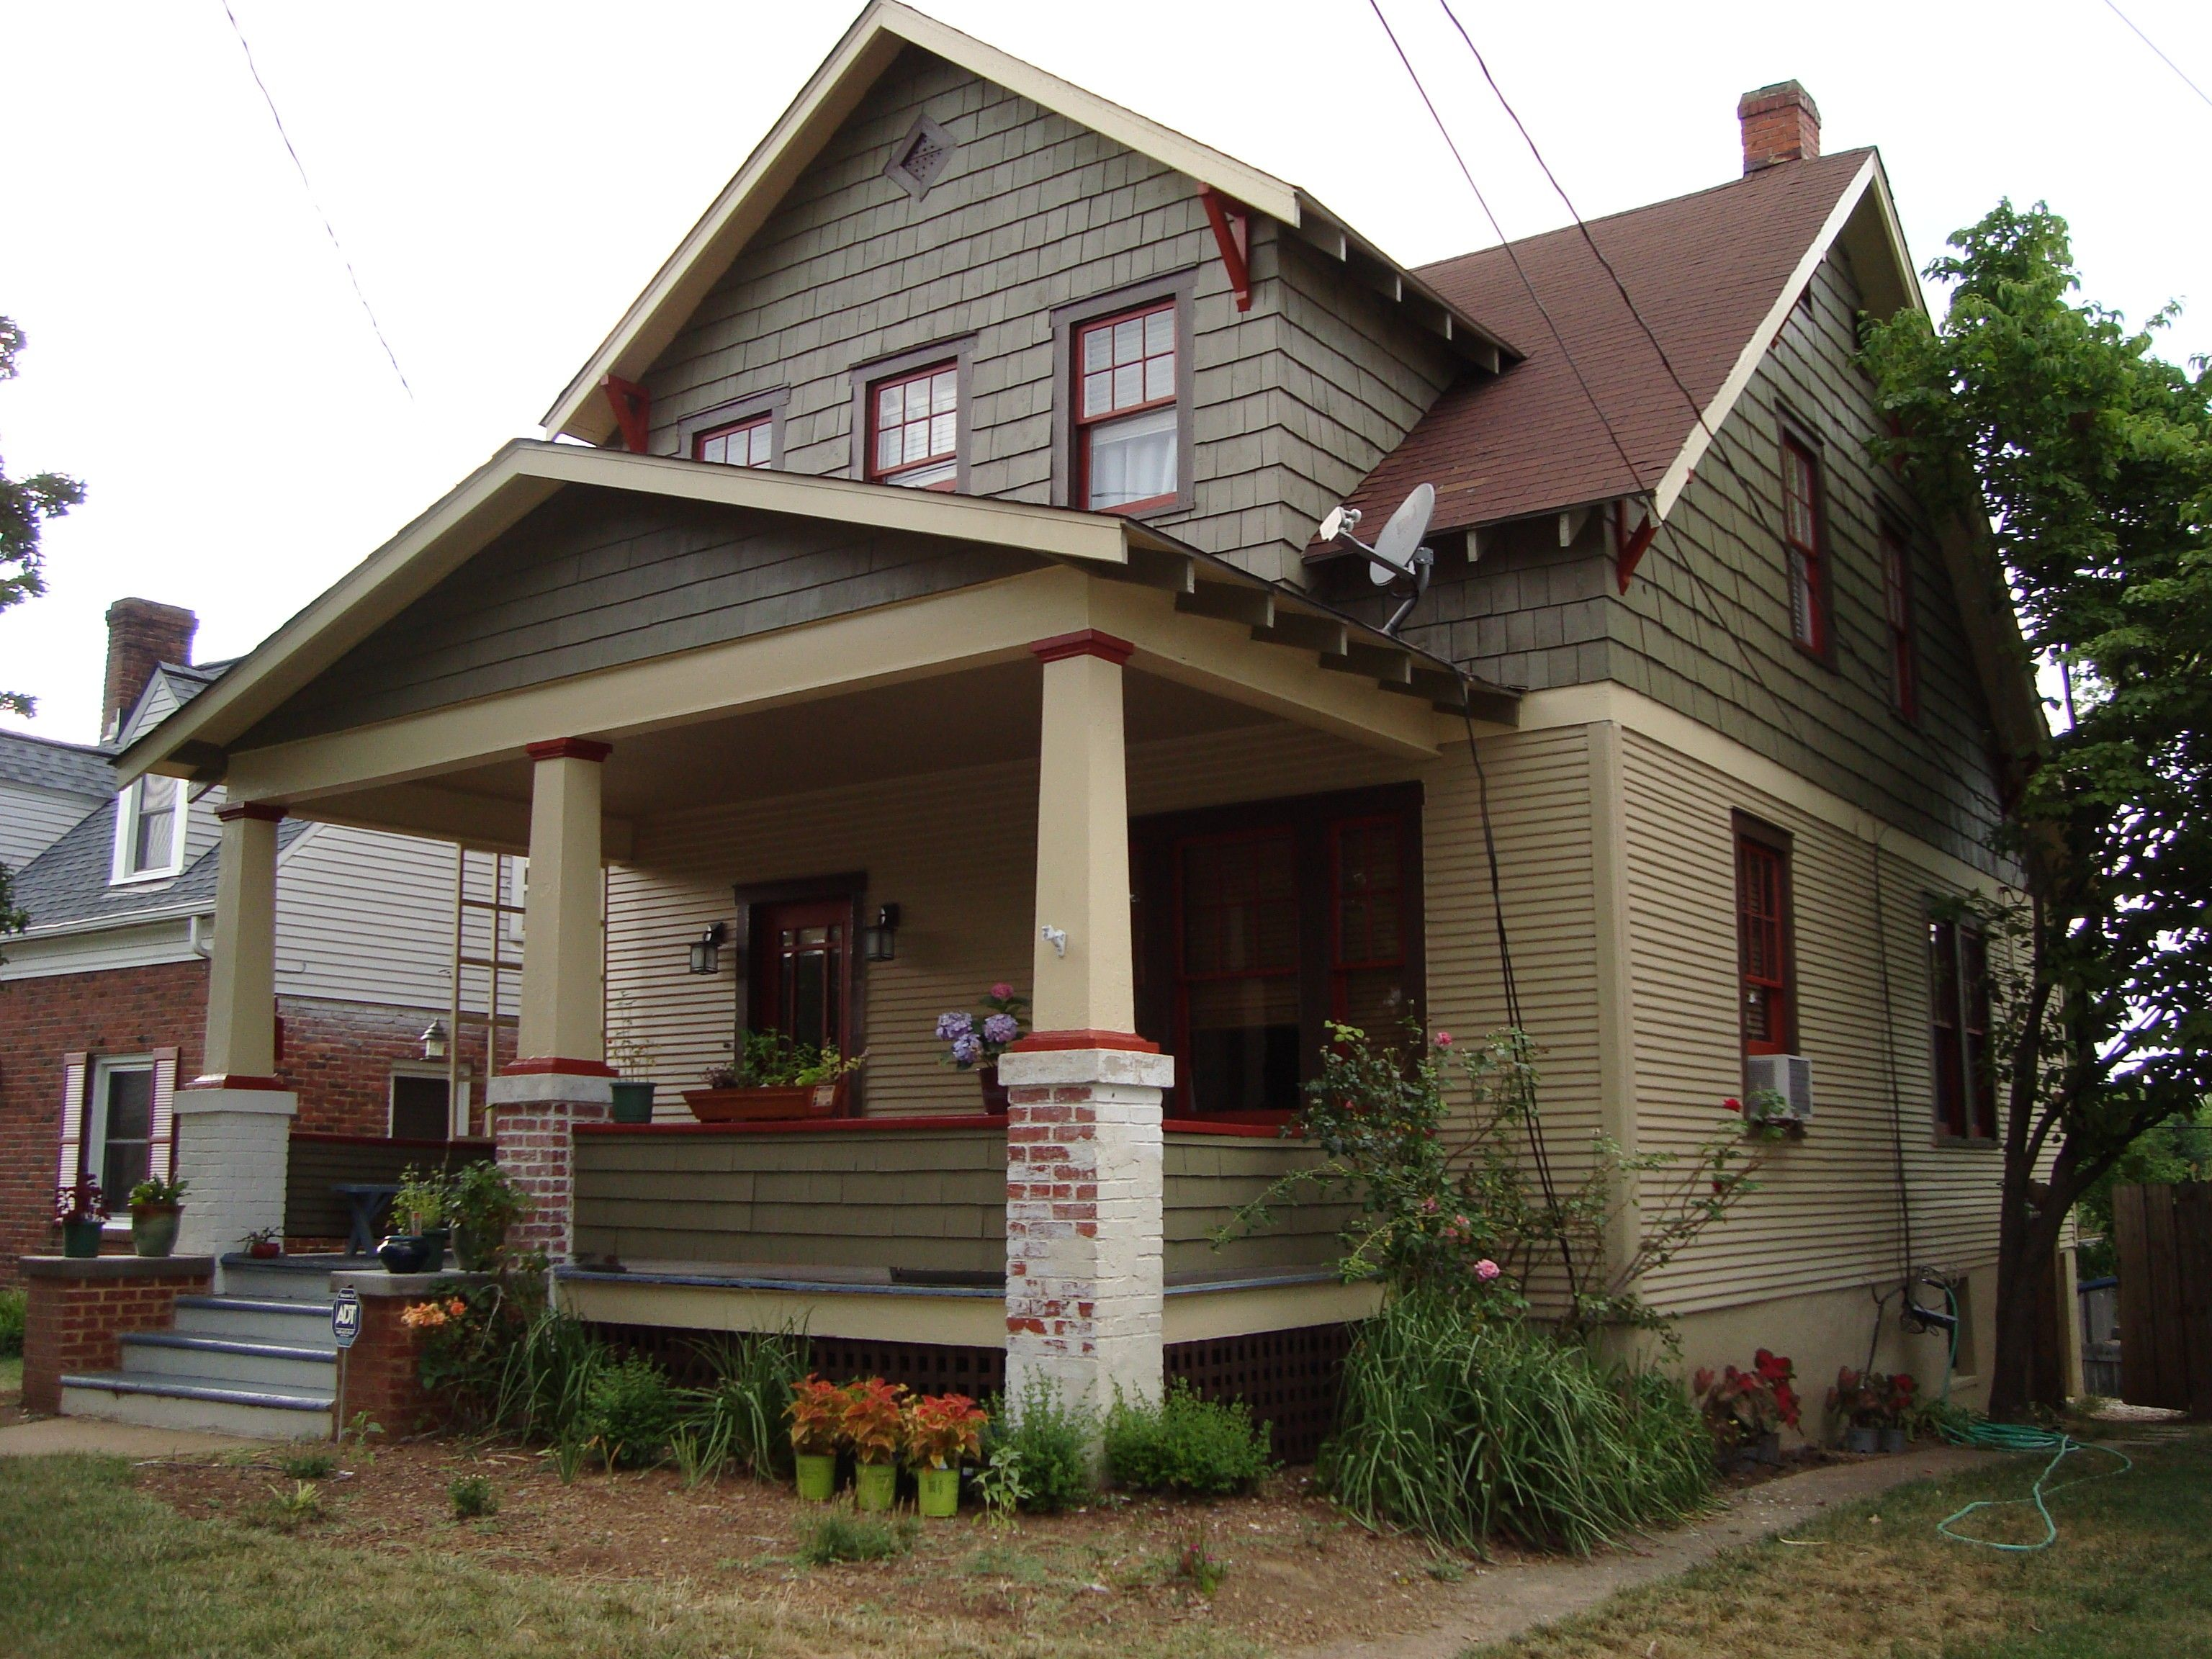 Exterior paint bungalow home color colors for an historic virginia bungalow submit an entry house